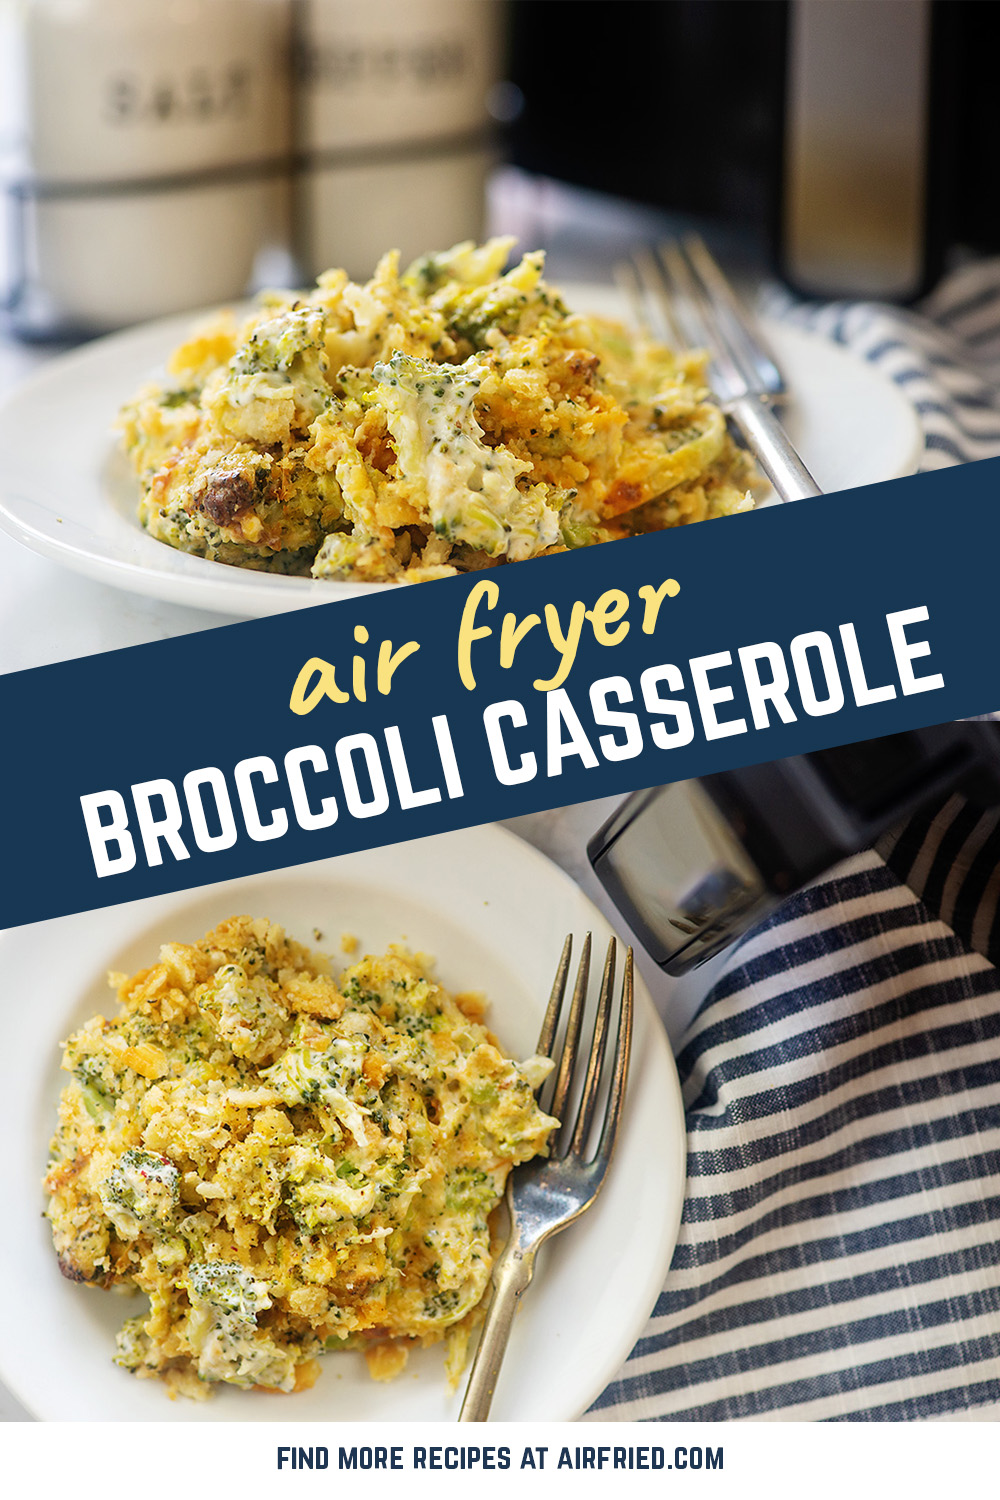 We air fried this broccoli casserole and loaded it with a bunch of cheese! #airfryer #recipes #casseroles